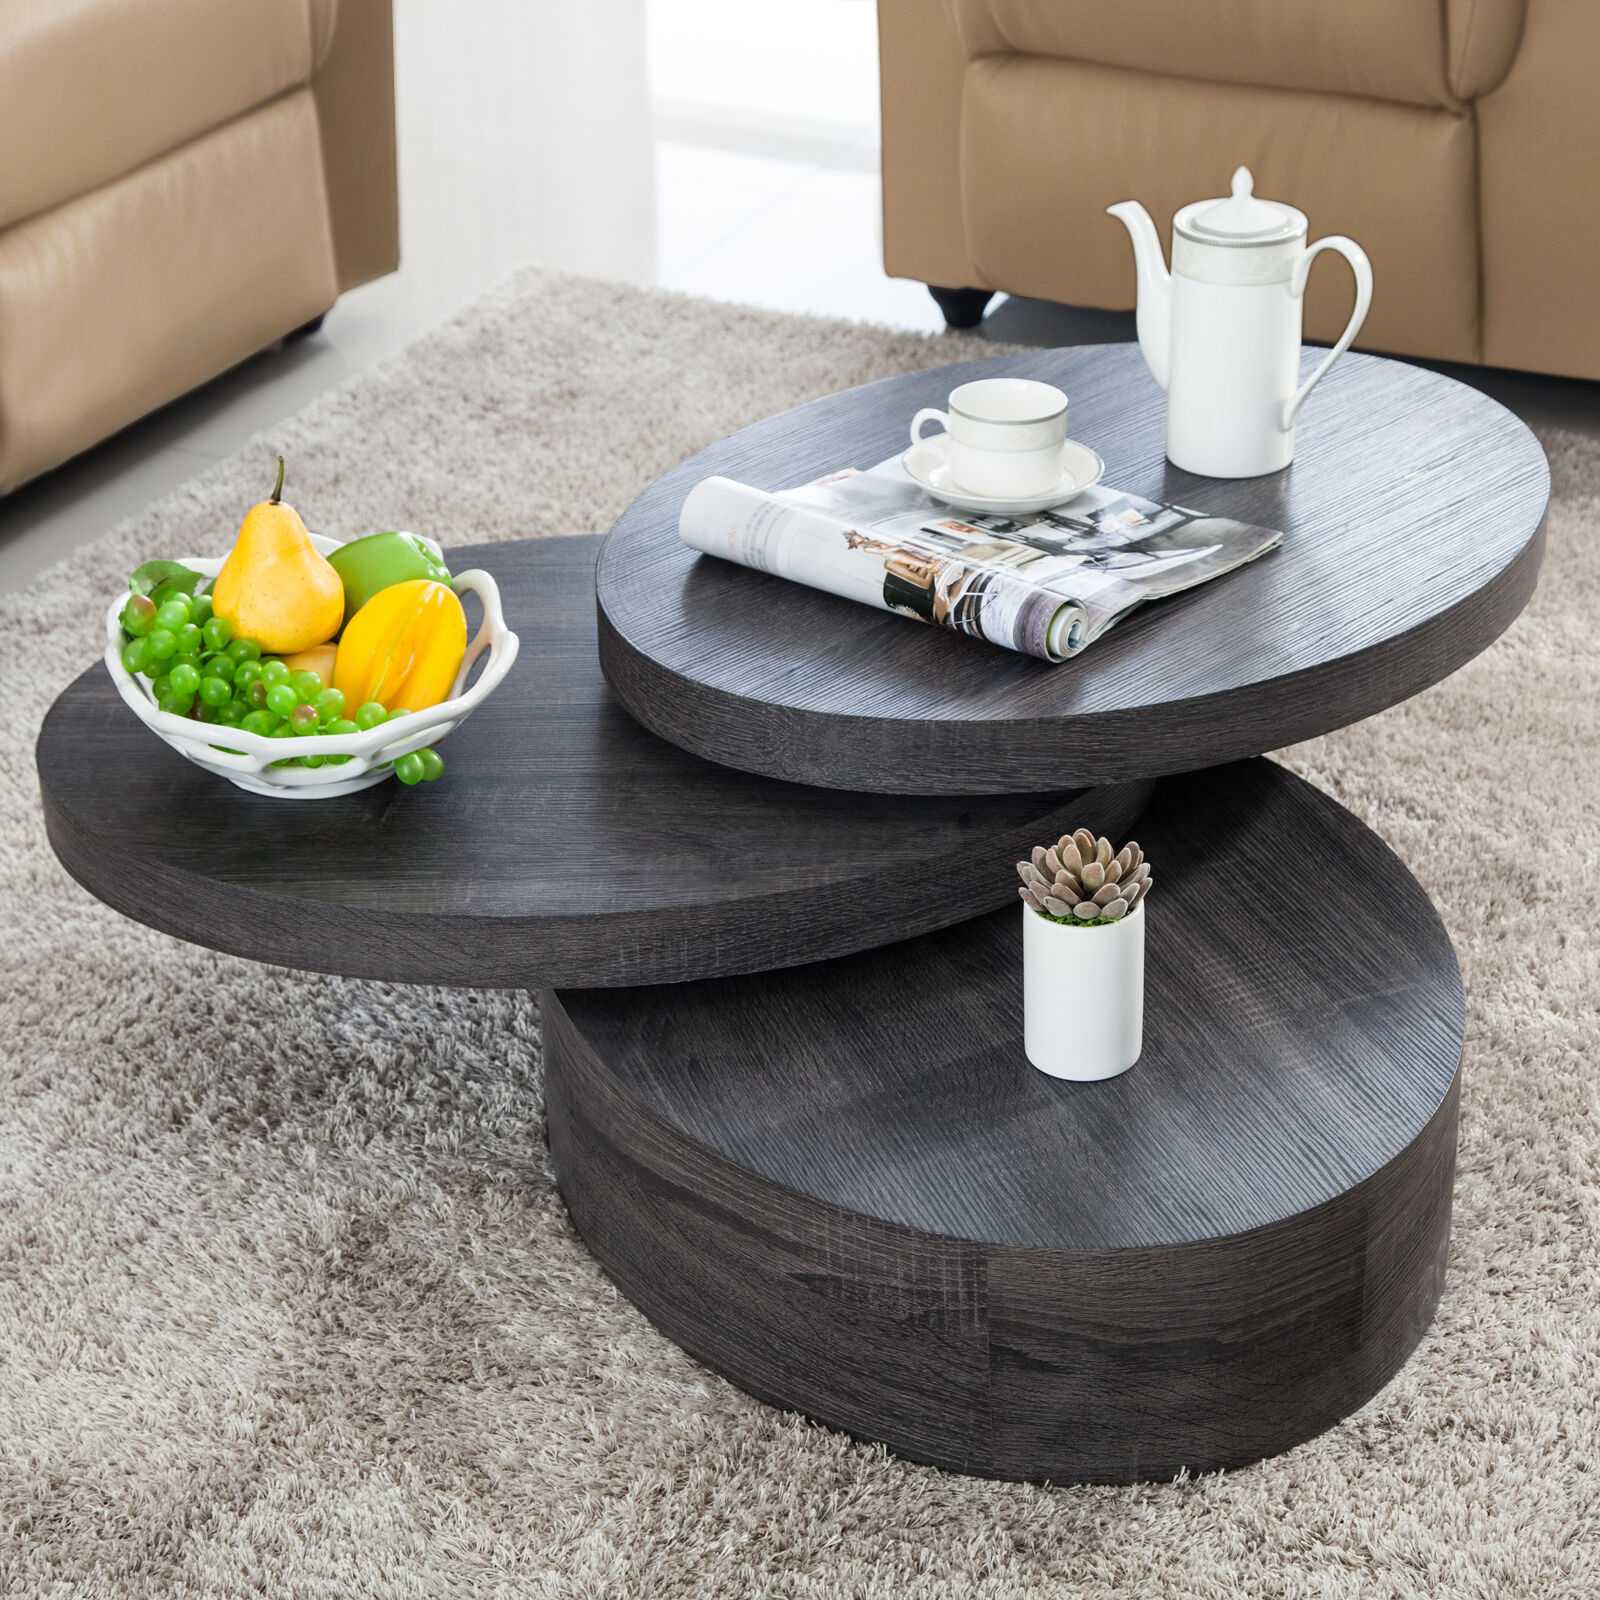 3 Layers Oval Black Oak Wood Coffee Table Round Rotating Living Room Furniture